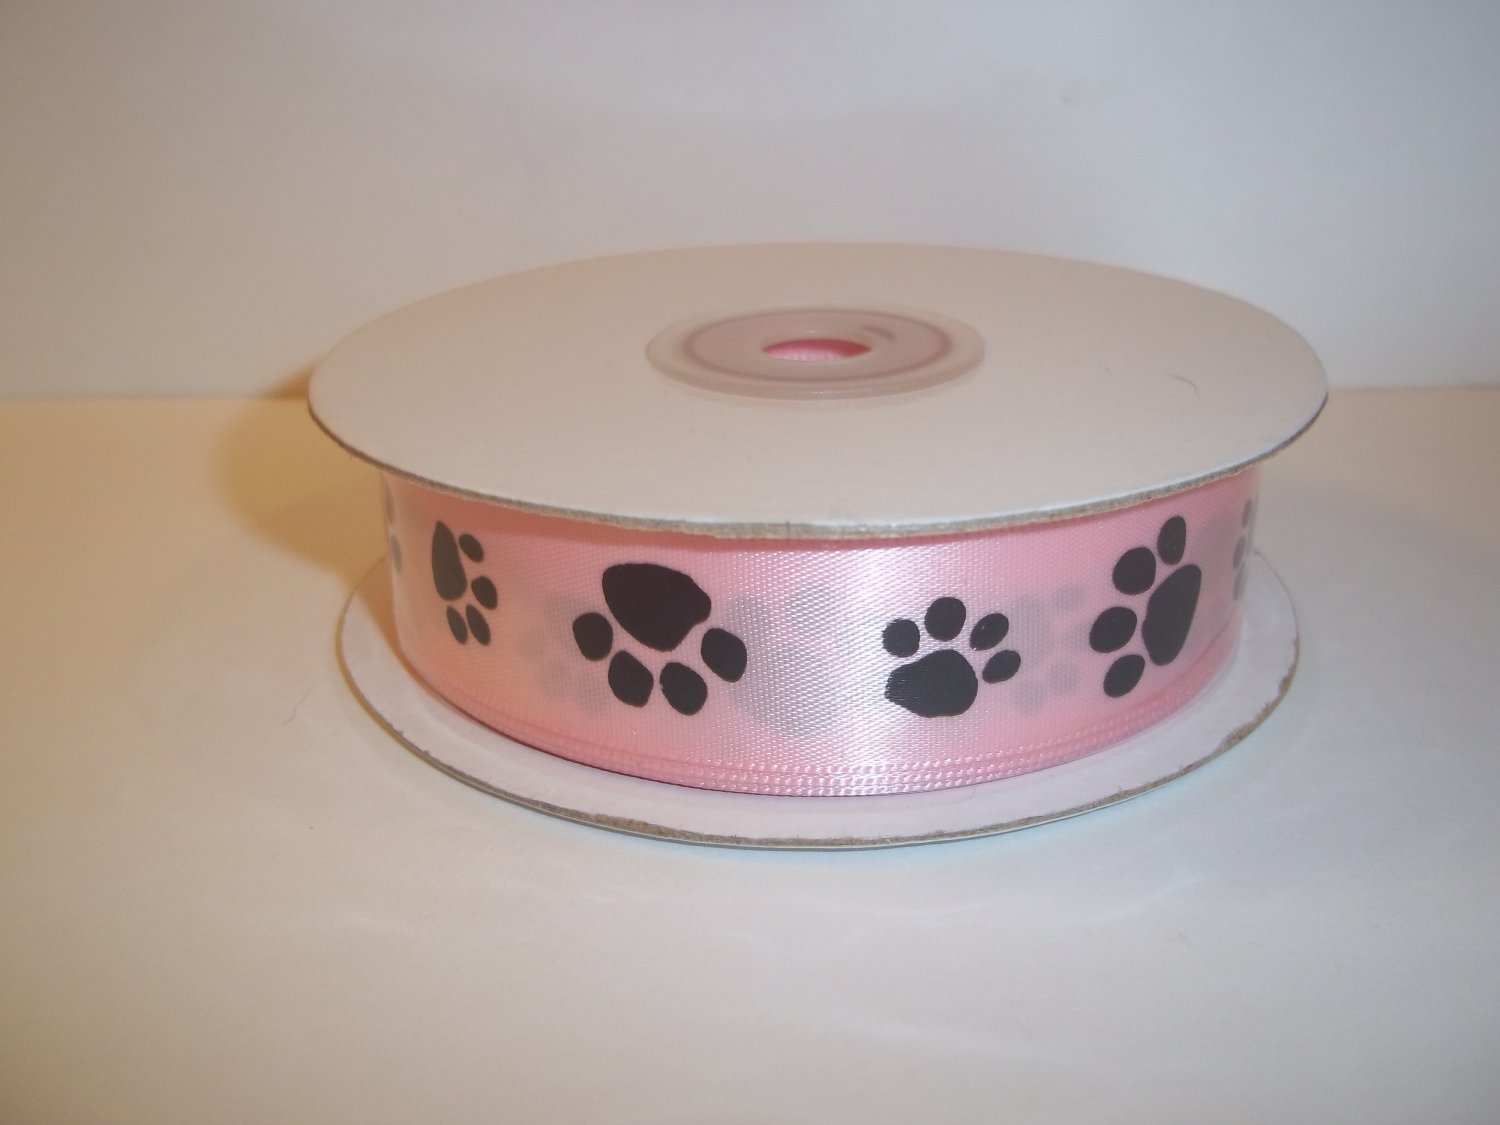 "Pink Satin Fabric Pawprint Crafting Gift RIbbon 7/8"" x 25 Yards New In Package"